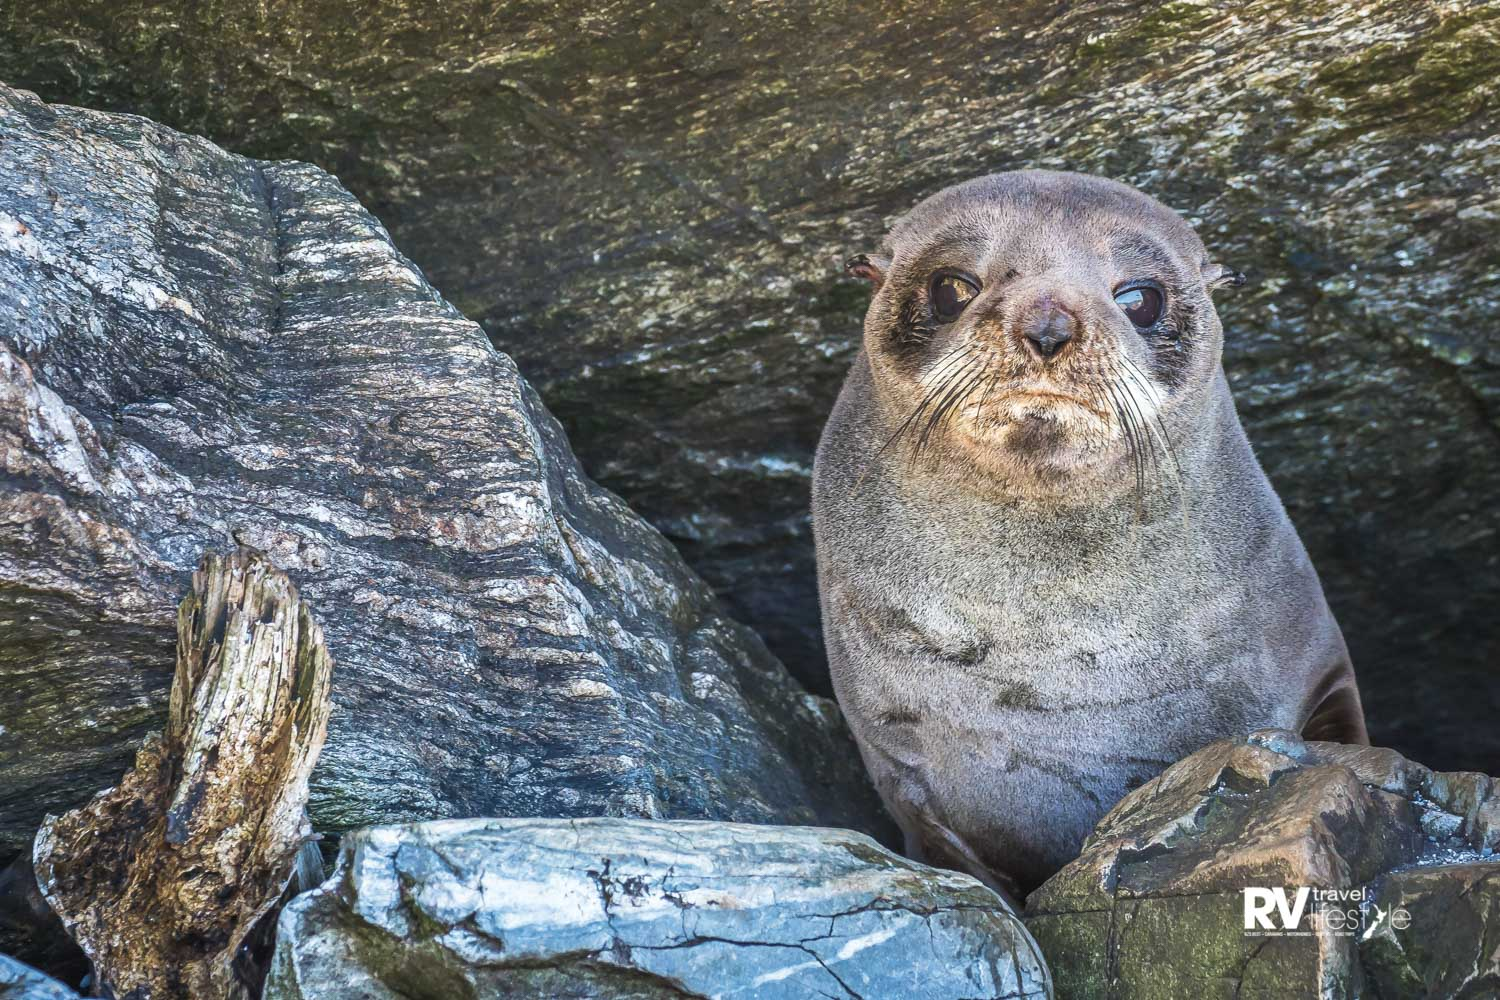 A New Zealand fur seal pup sneaking a peek from his rocky hideaway